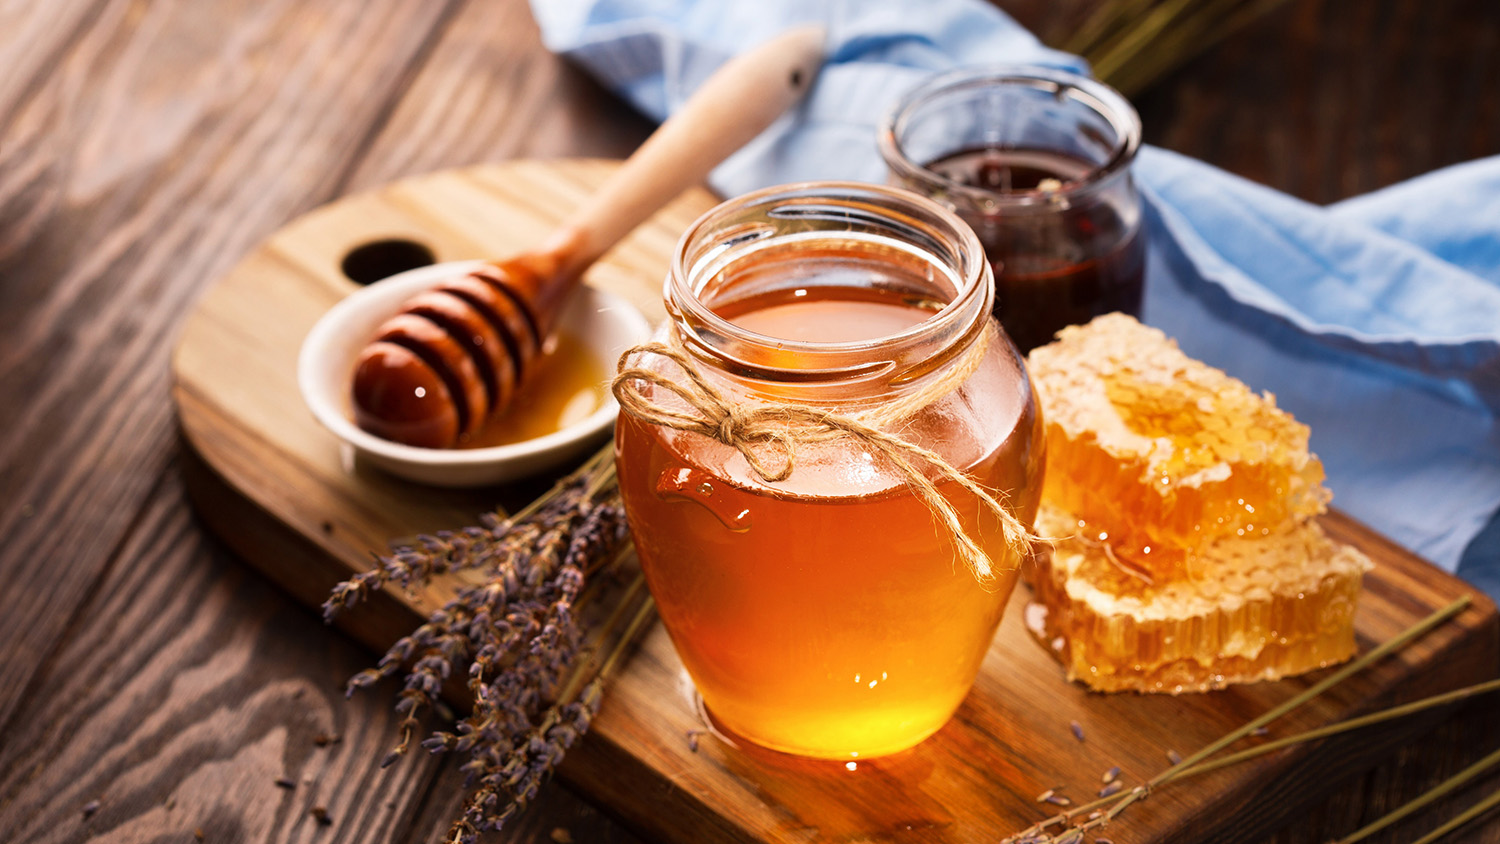 6-surprising-health-benefits-of-honey-136426474967702601-180416092019